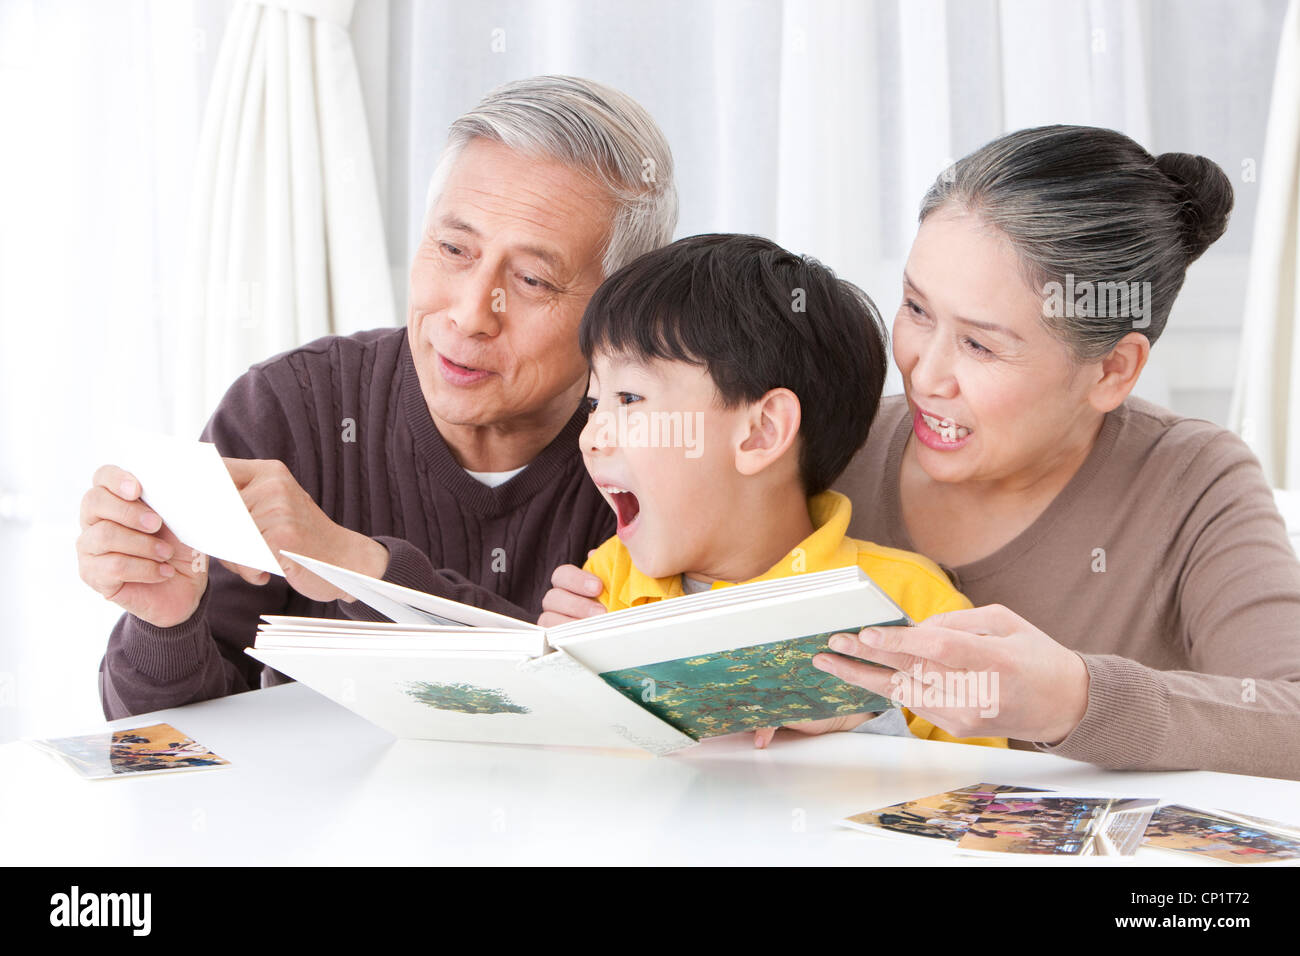 Grandparents and grandson looking through family album - Stock Image